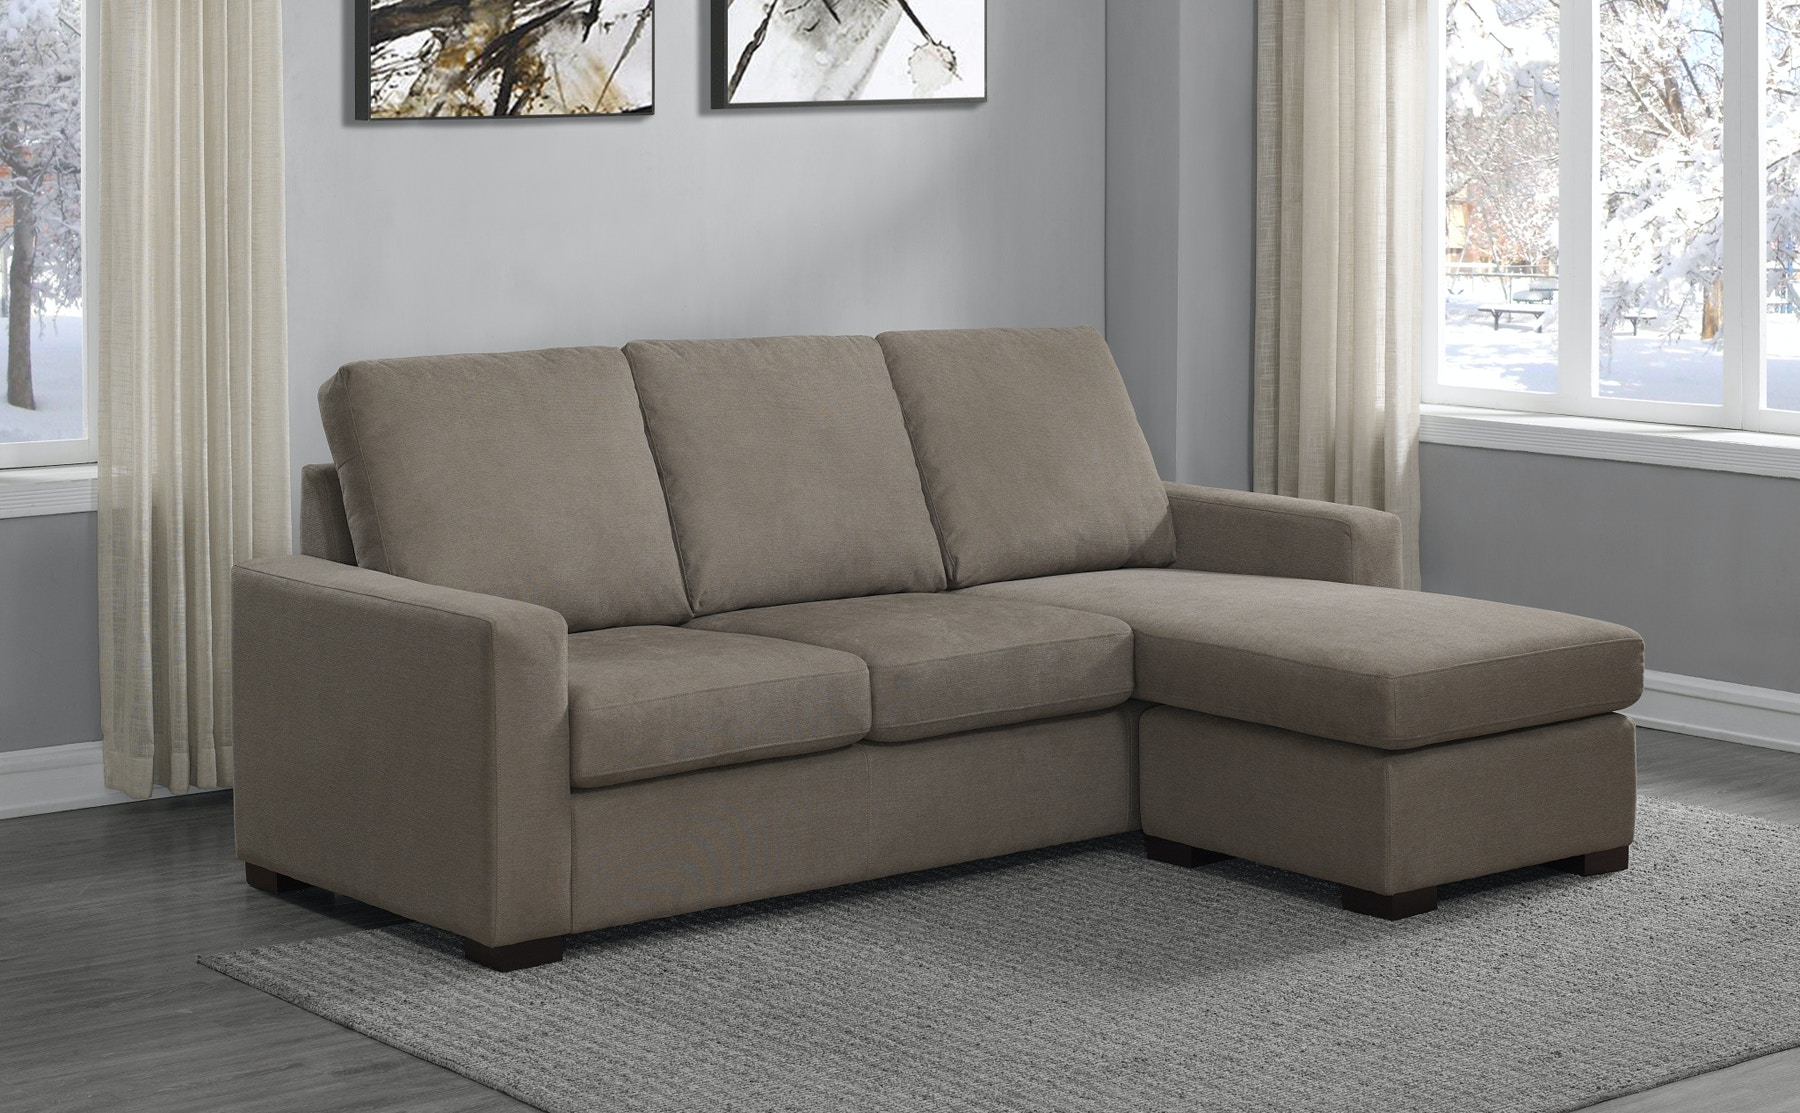 Prime Resources International Living Room Newton Sofa Chaise